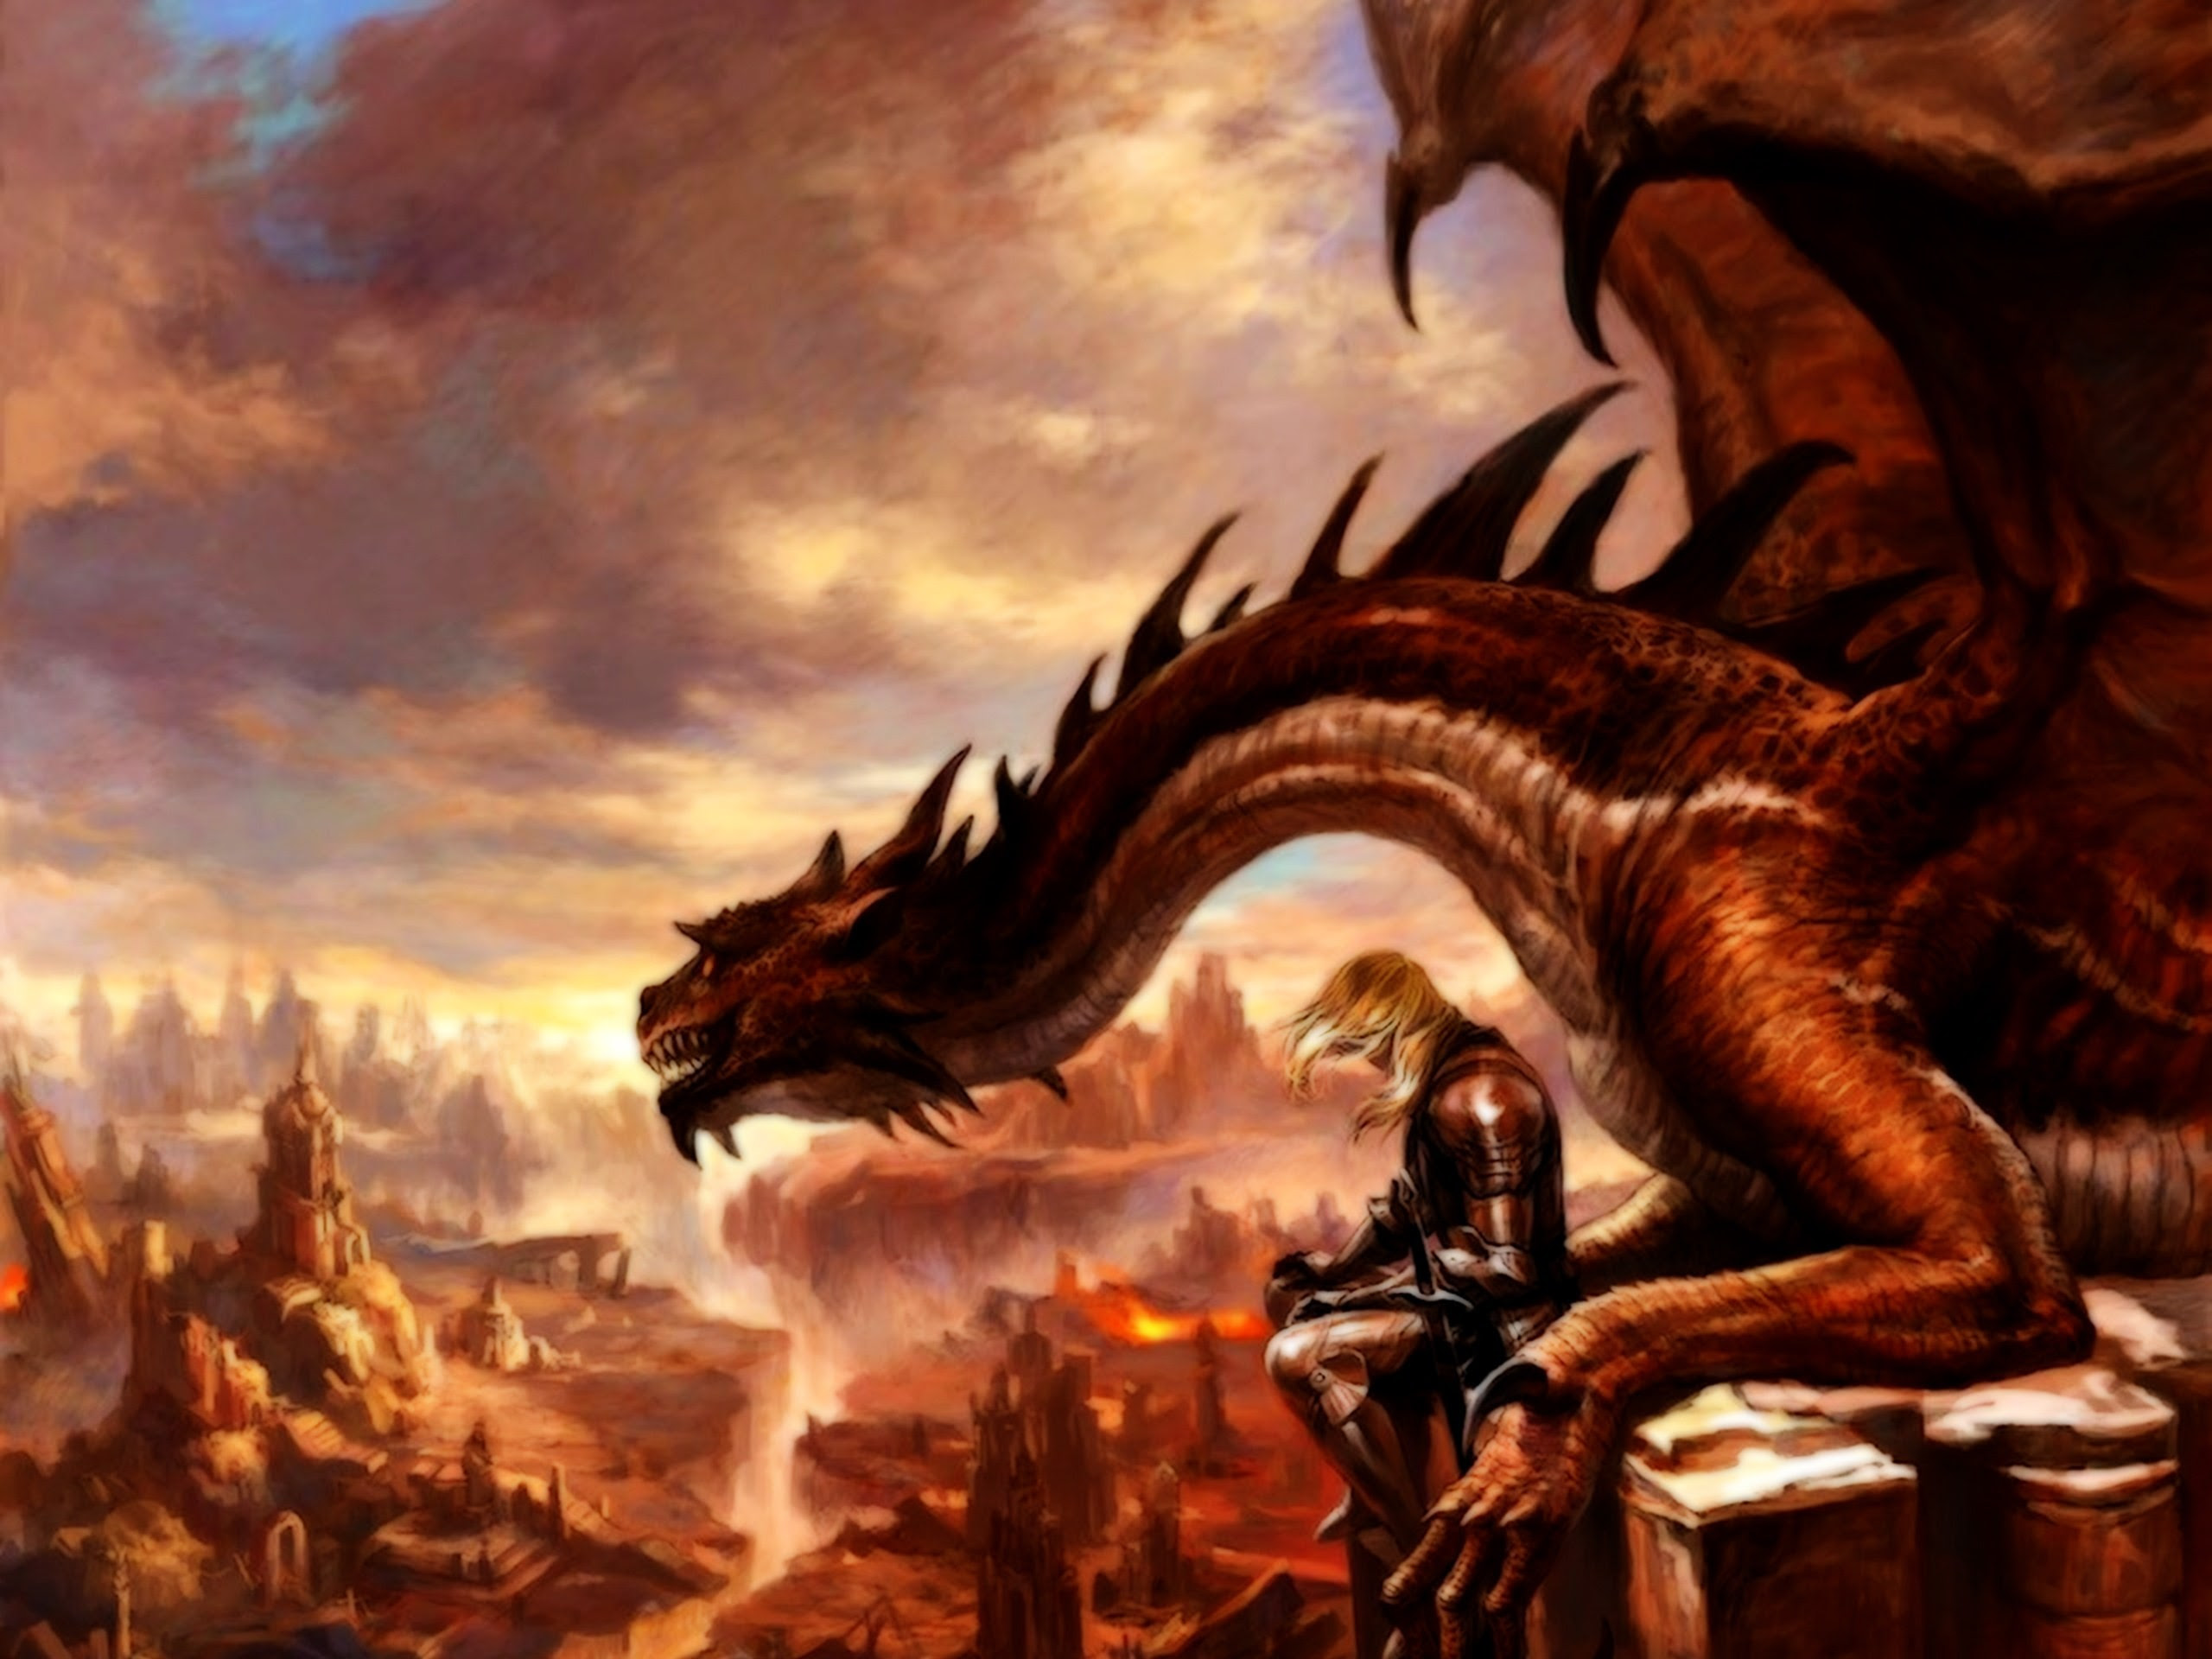 Dragon Fantasy Wallpaper 2560x1920 42306